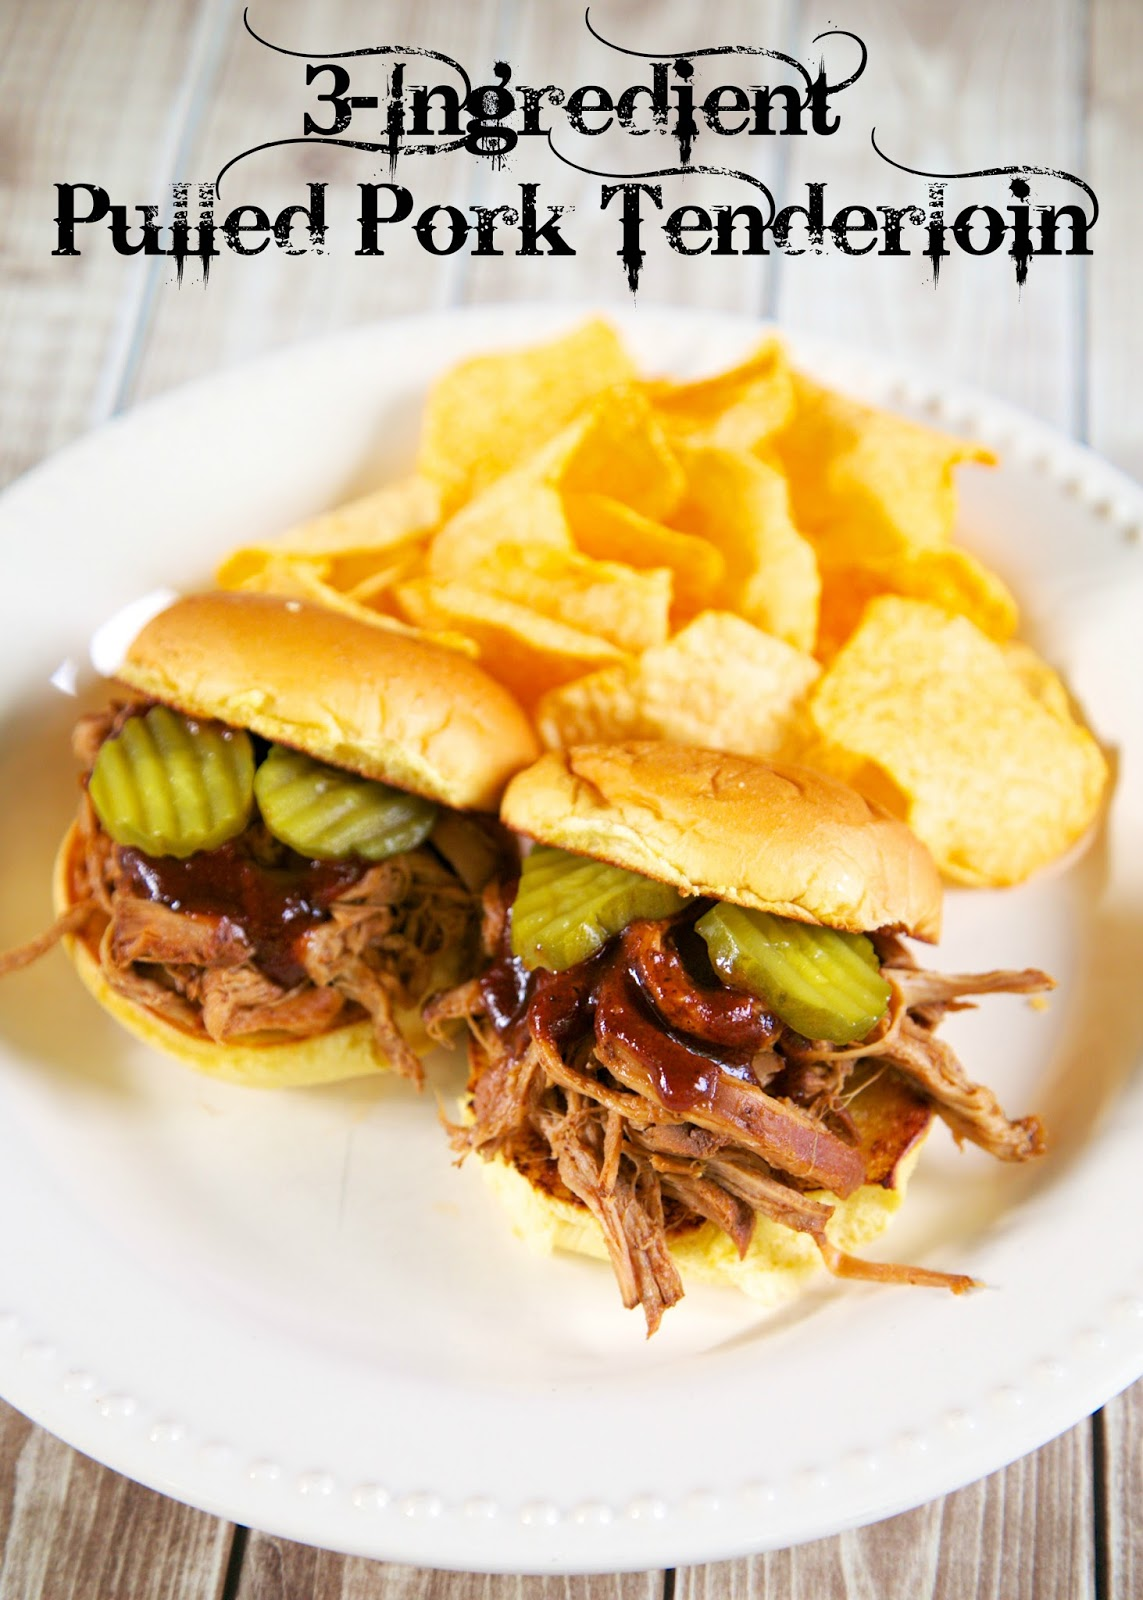 3 ingredient pulled pork tenderloin - Dinner with only three ingredients? Yep! All you need is pork tenderloins, Coke, and BBQ sauce and you can have a delicious dinner without any fuss! The pork cooks all day in the slow cooker and is ready to shred when you get home from work! SO easy! YUM!!!